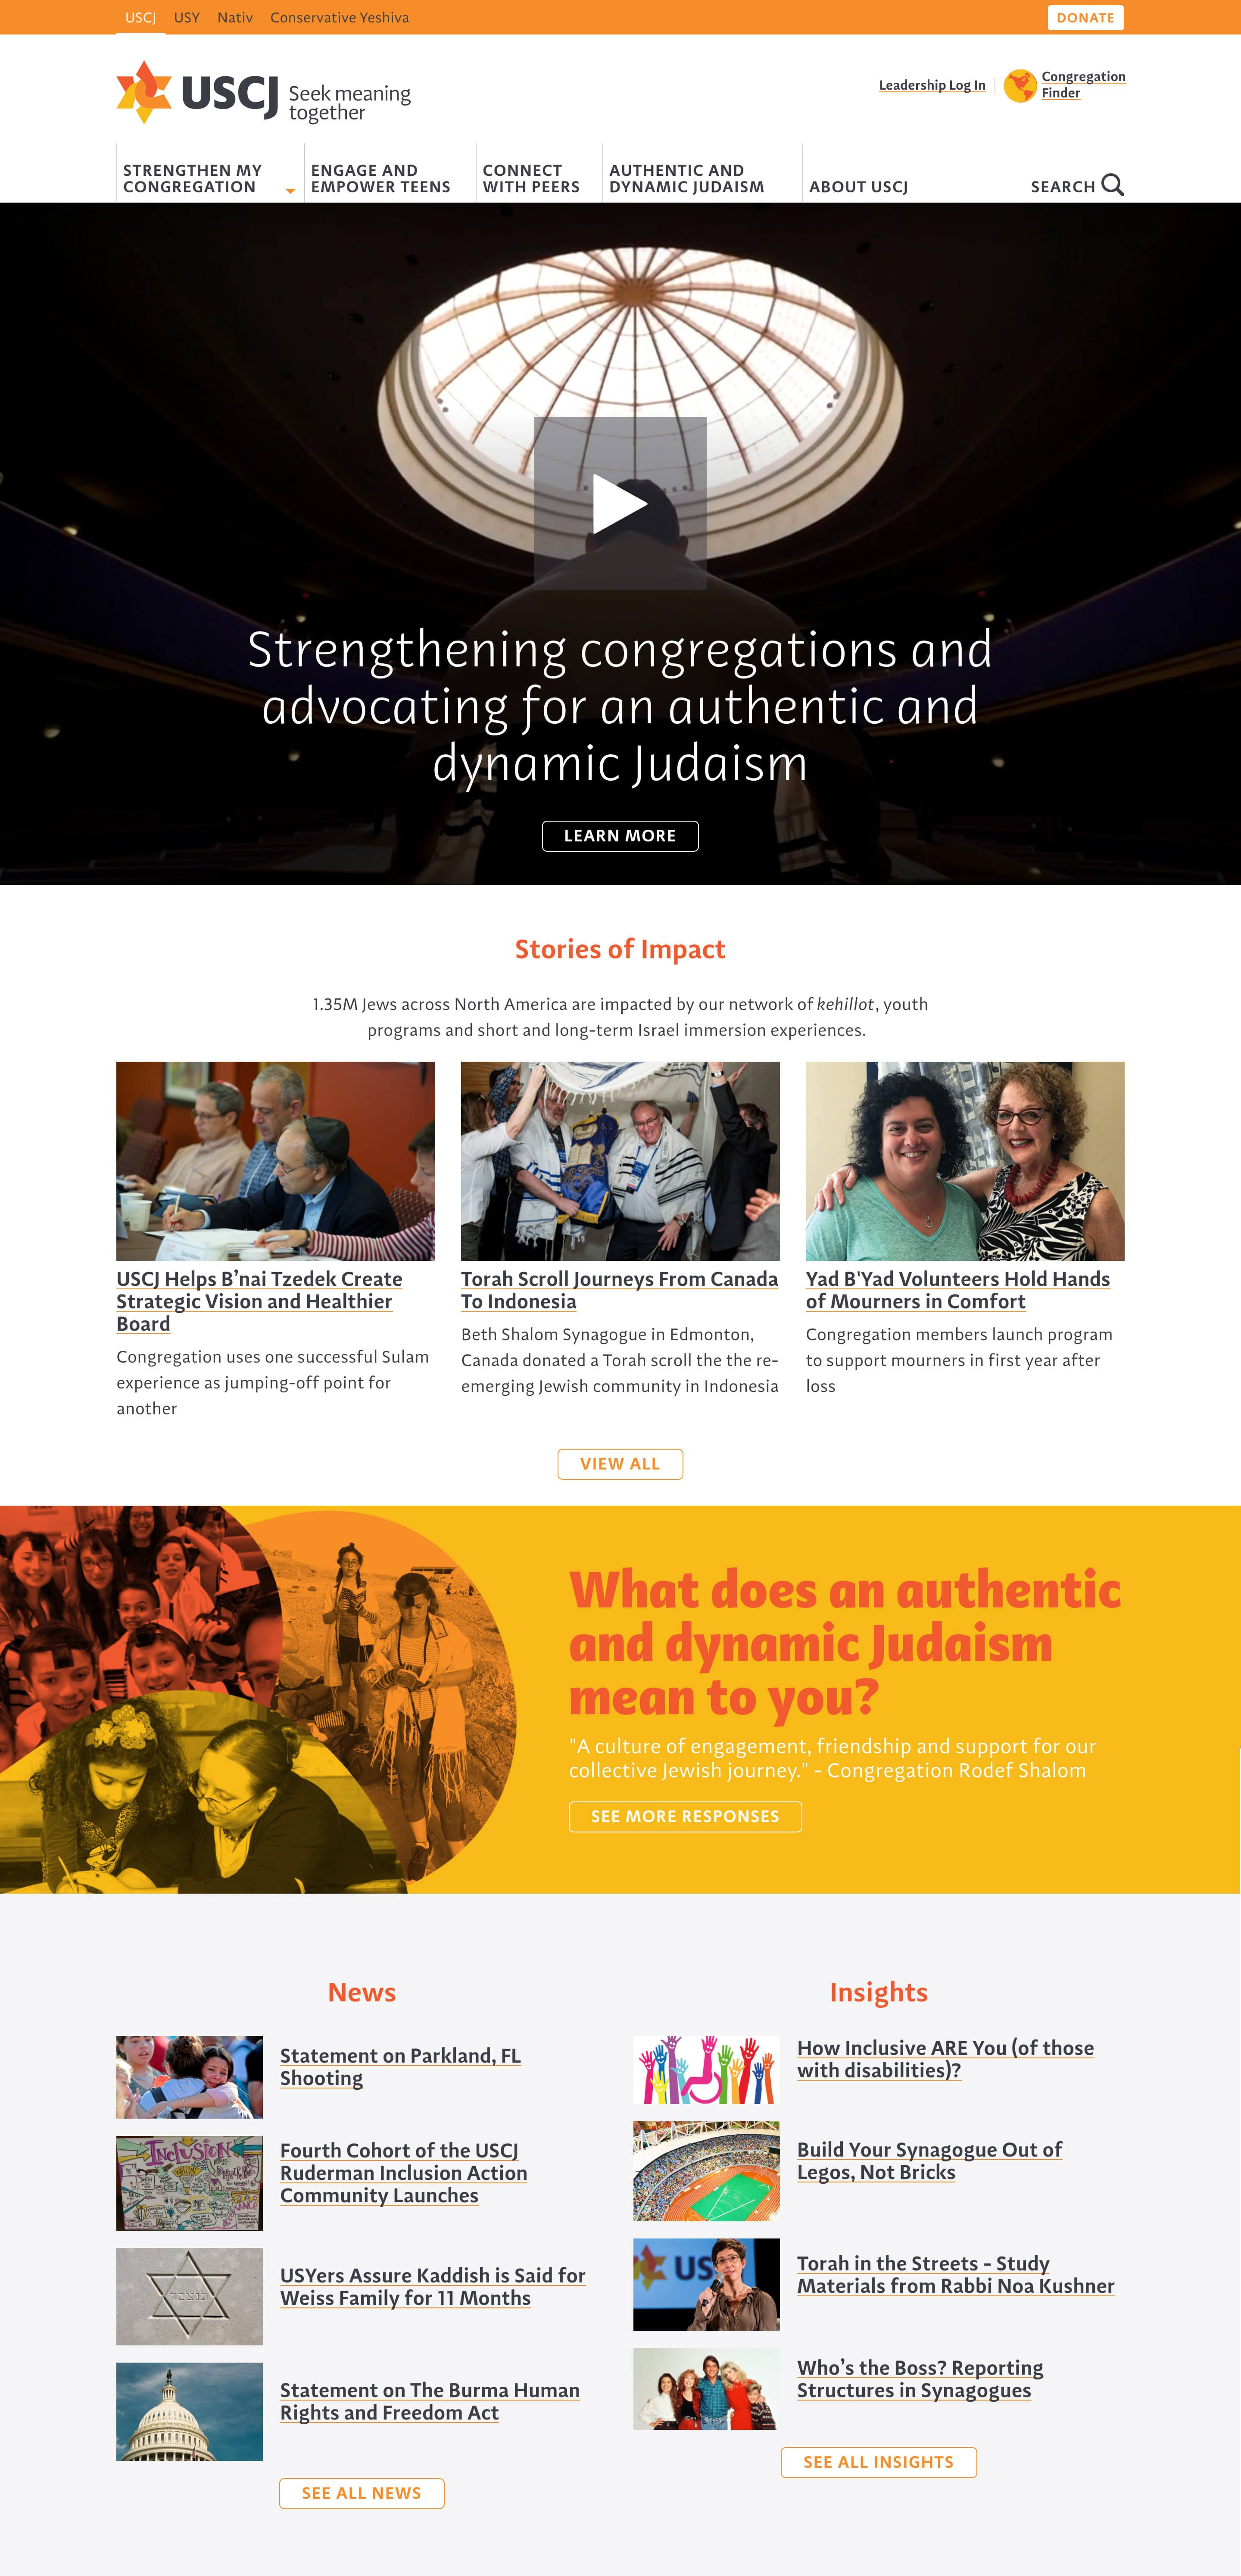 A mission-focused website for an organization representing hundreds of congregations across North America